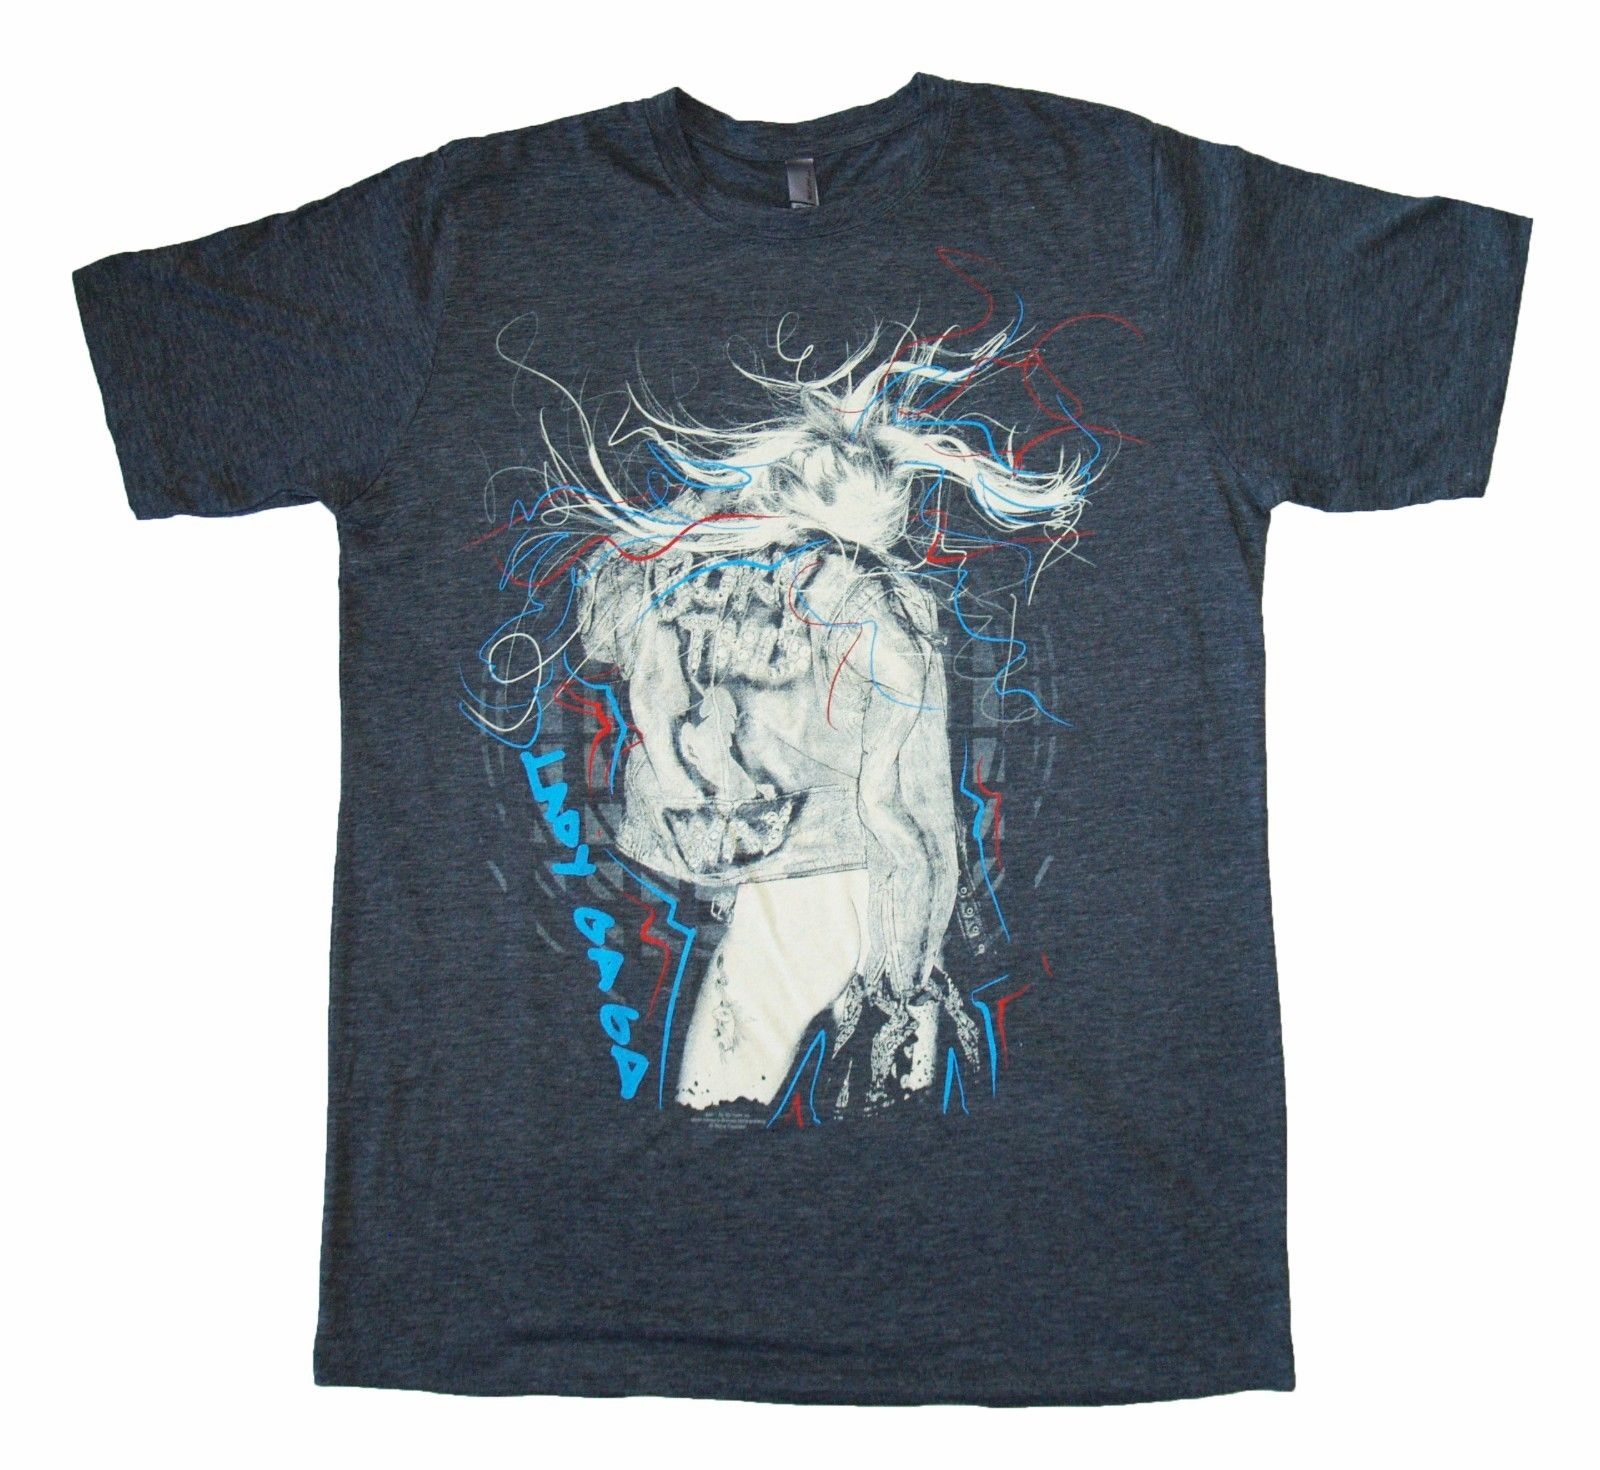 LADY GAGA - Scribbles - Official Licensed T SHIRT Brand New Arrival MenS Short